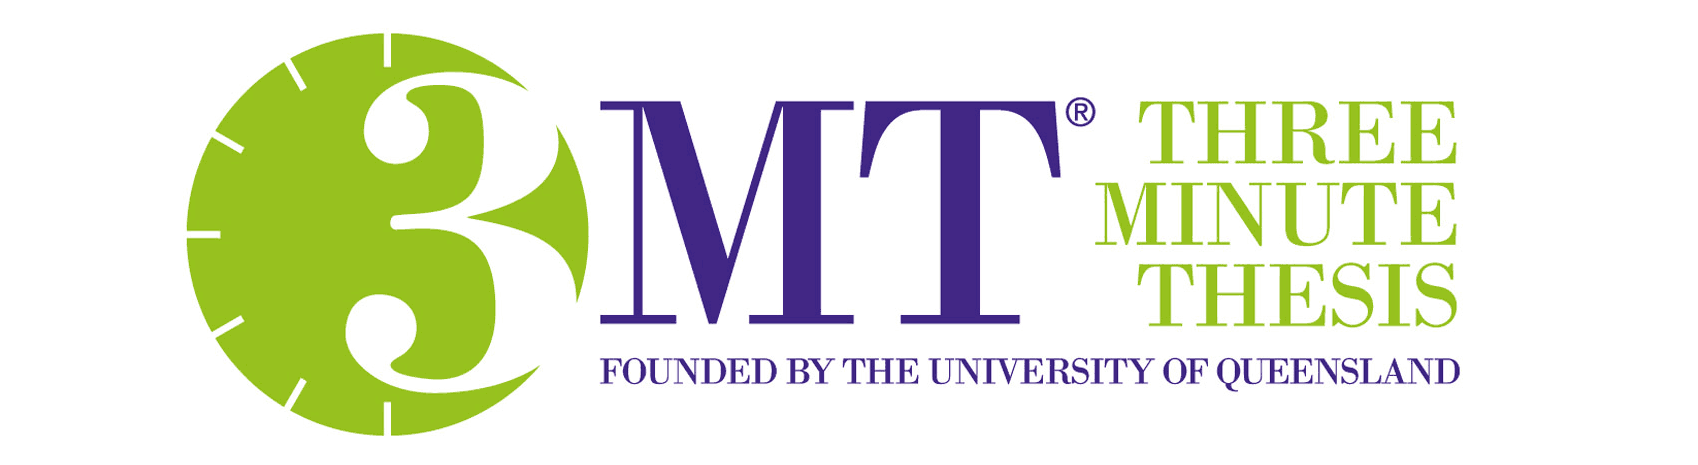 The Three Minute Thesis (3MT®) is an academic competition developed by The University of Queensland (UQ), Australia for research students.